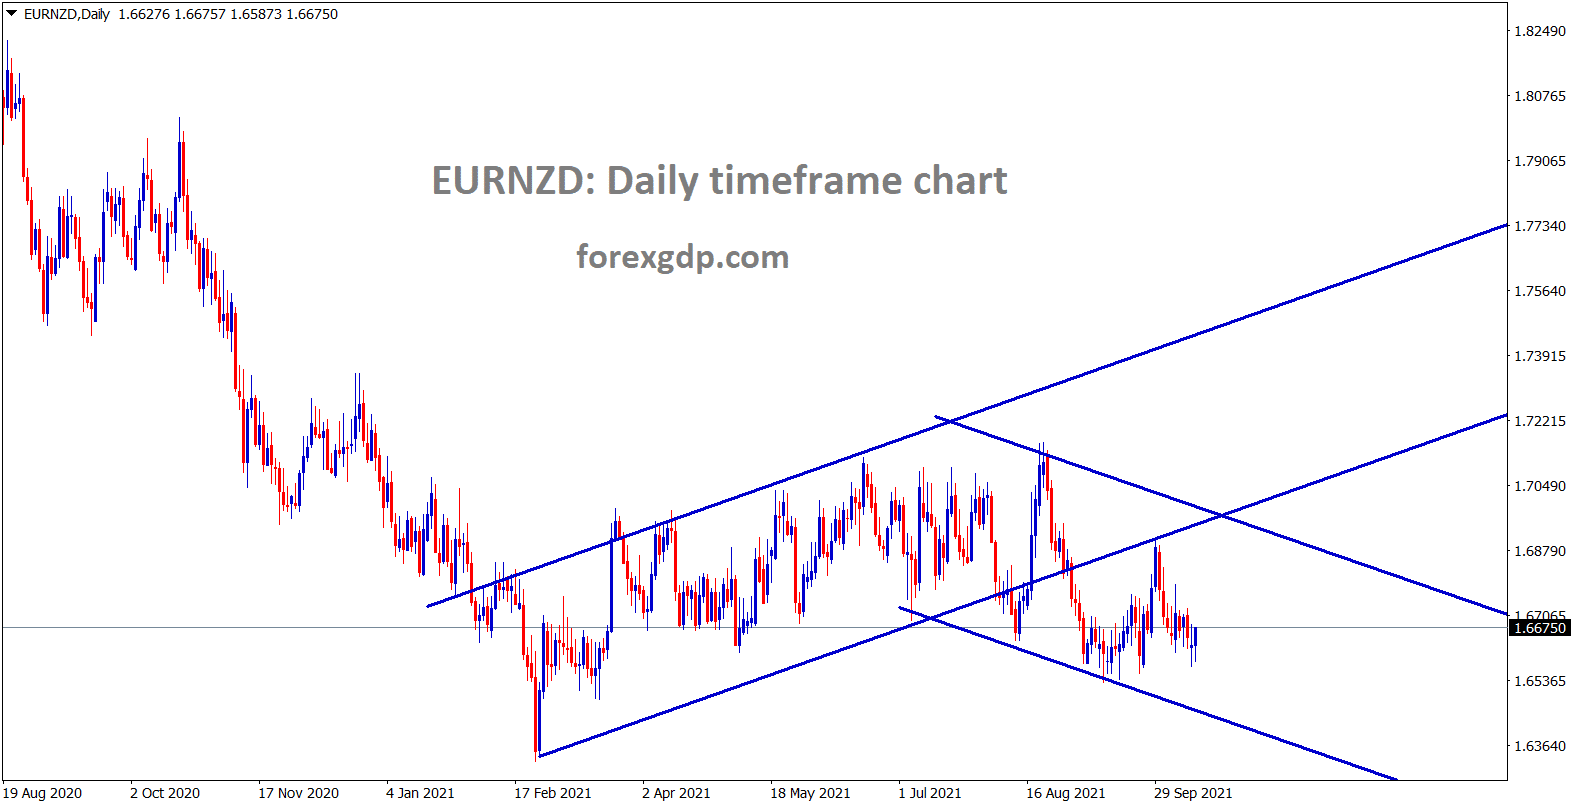 EURNZD is moving in a channel ranges